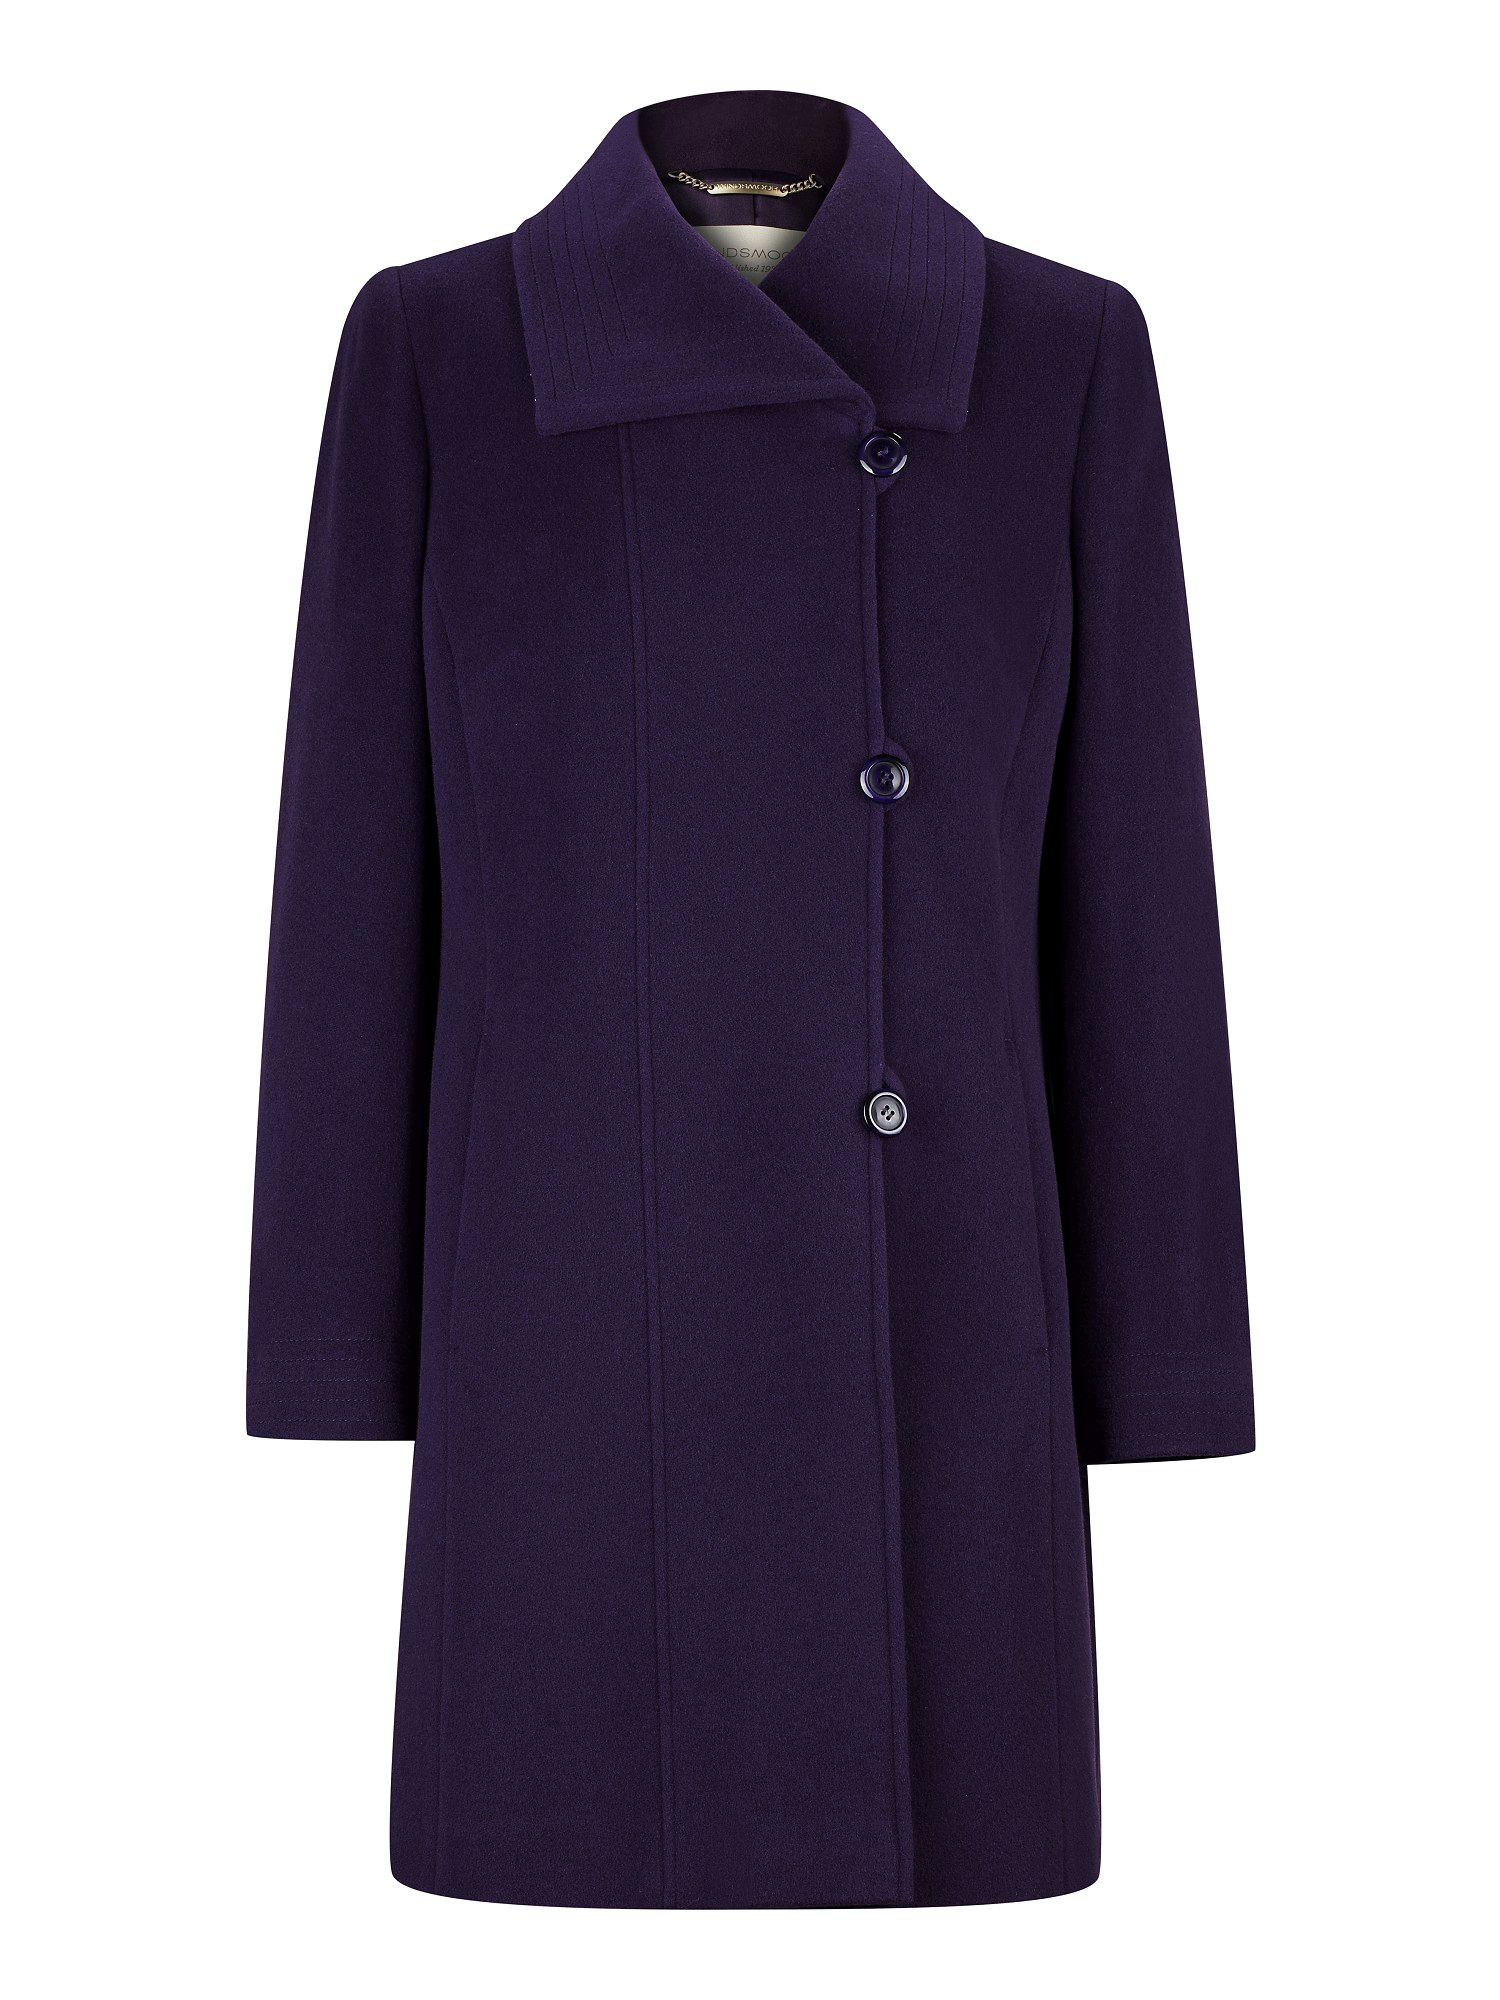 Mid-length damson coat